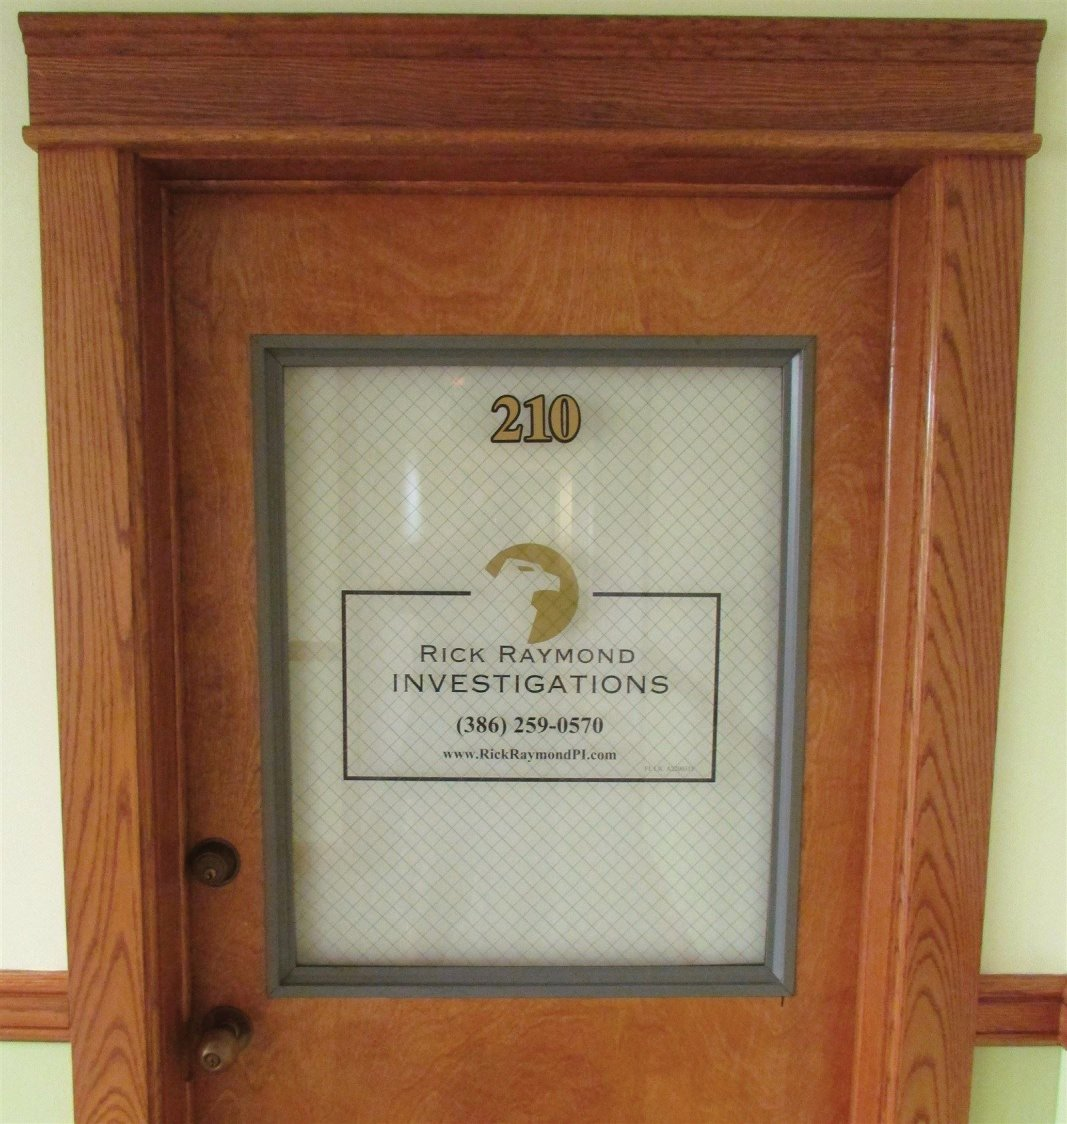 Private Investigators in Daytona, Daytona Private Investigators, Ormond Beach Private Investigators, background checks, process service, cheating spouses, adultery, infidelity, missing person search, alimony reduction, find a person, adoption investigations, florida private detectives, Daytona Beach P.I.